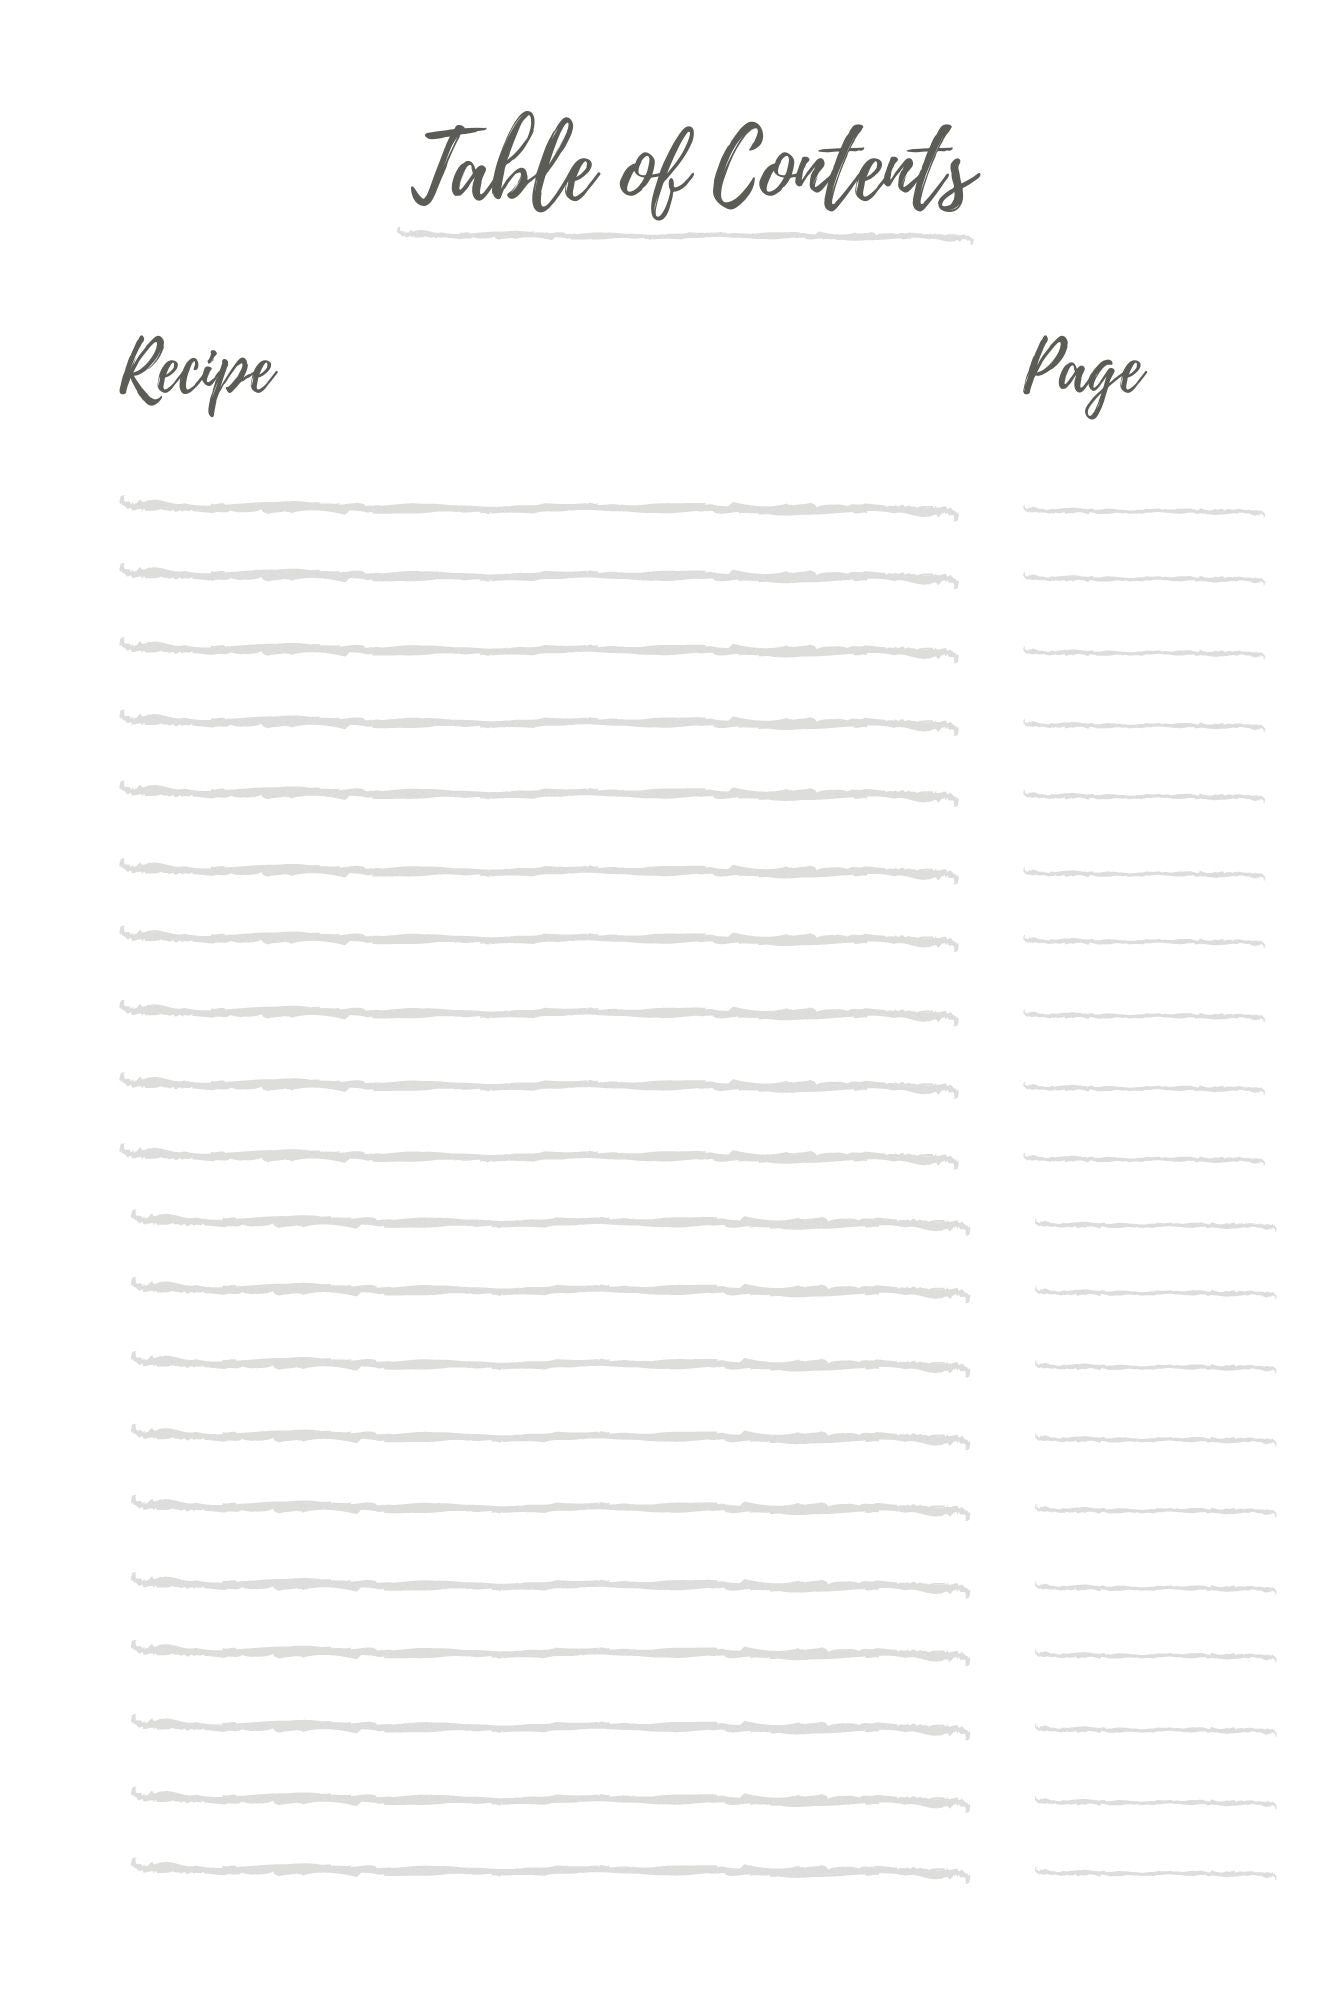 My Fave Recipes: Blank Recipe Book to Write in - Create Your Own Collection of Your Own Favorite Recipes